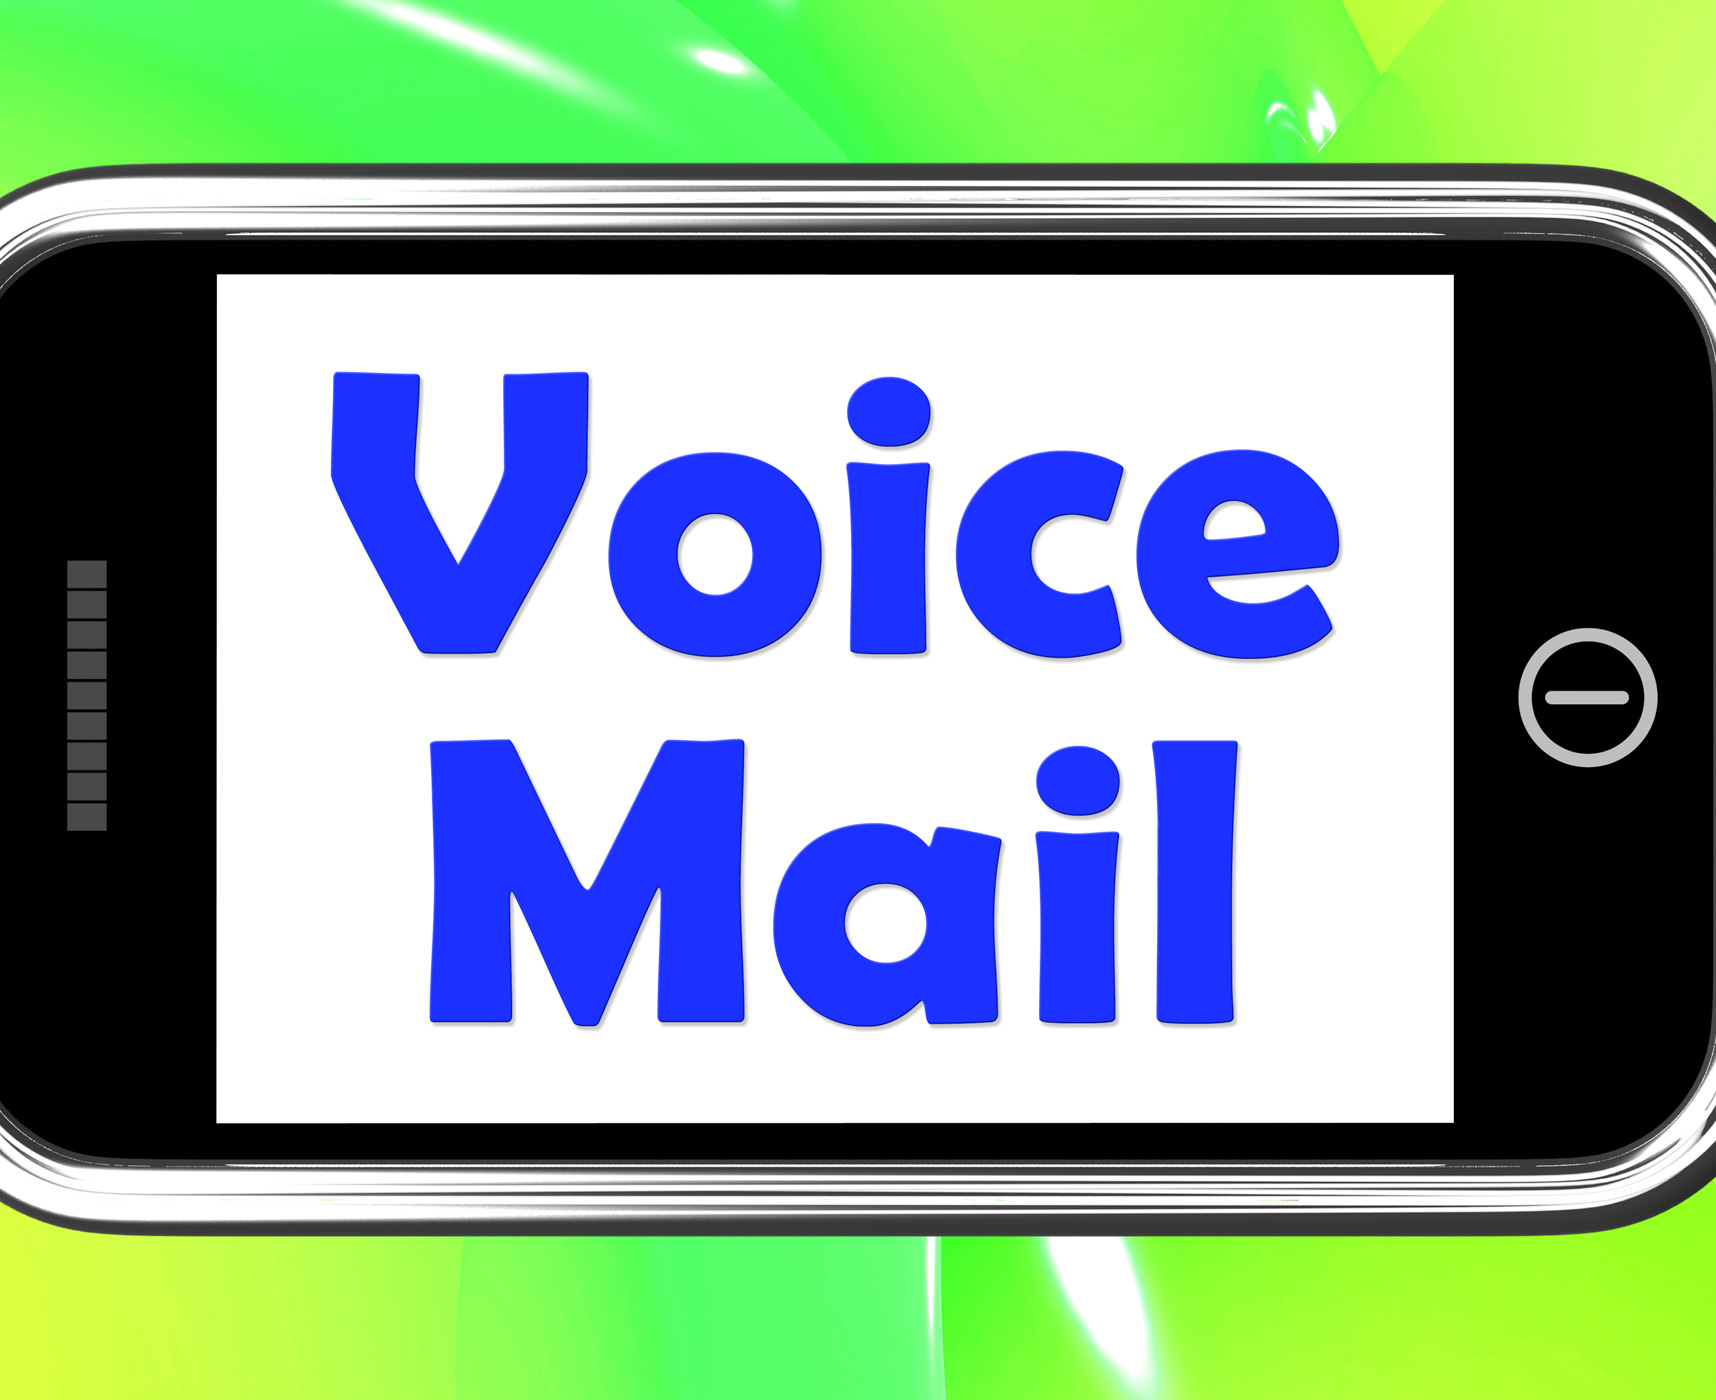 Voice mail on phone shows talk to leave message photo